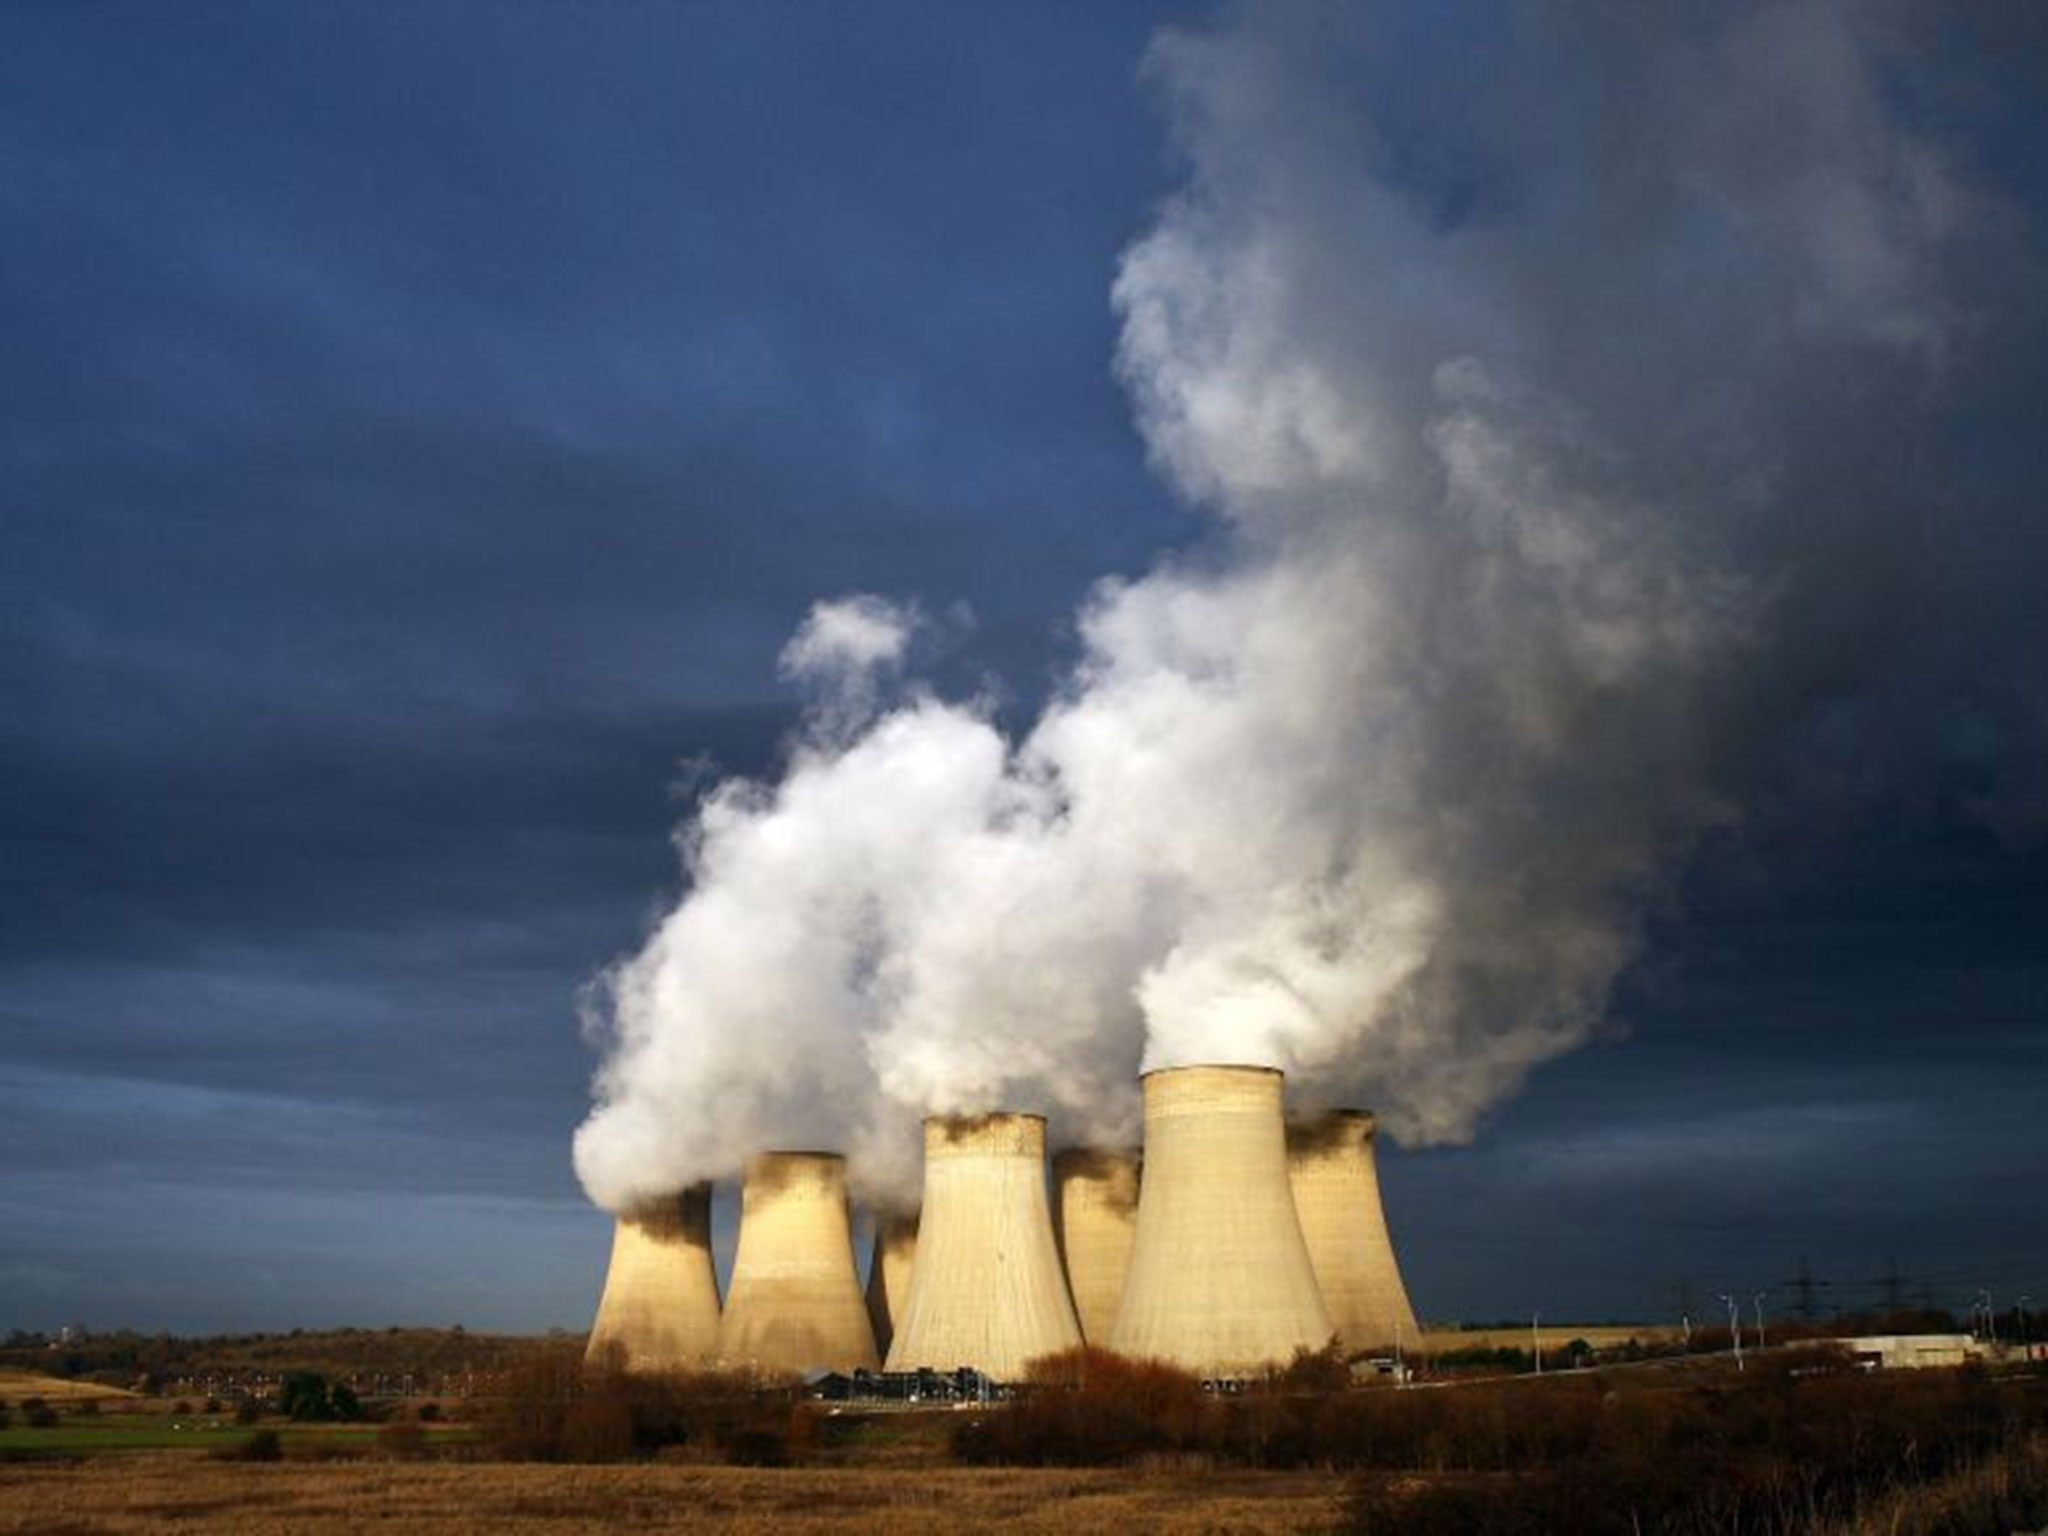 The day coal power dropped out of the national grid for the first time in more than 100 years